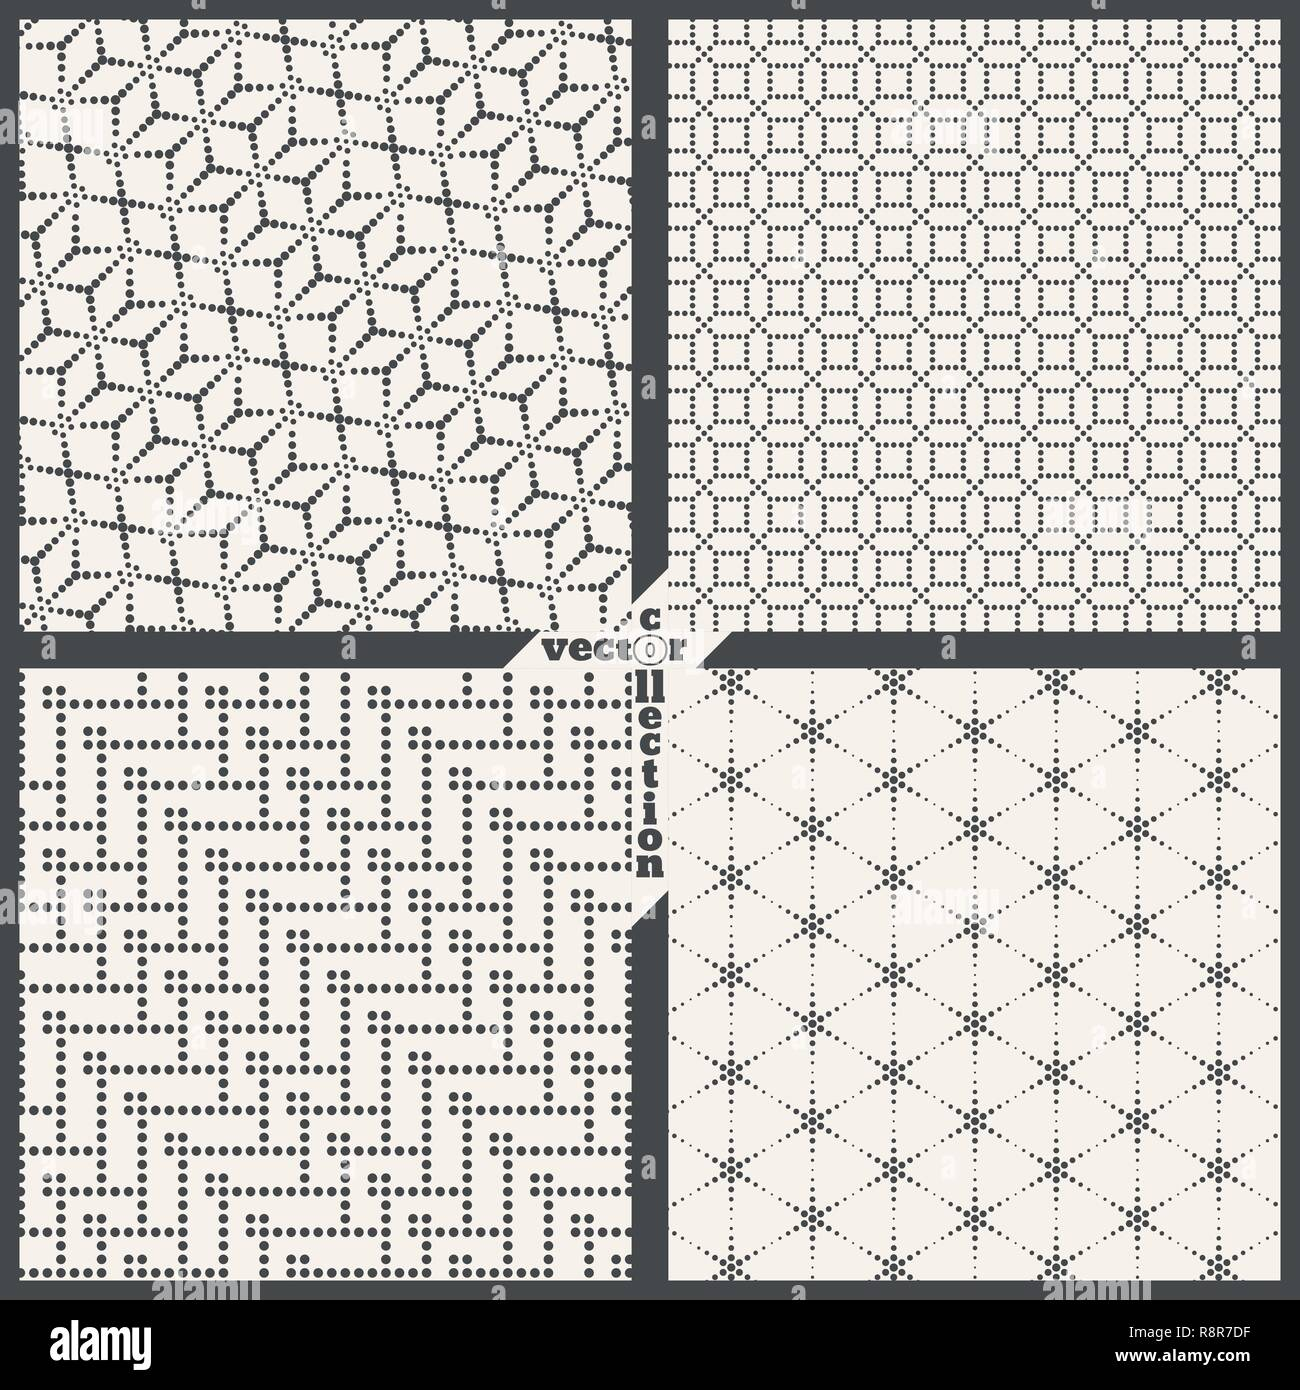 Texture Textures Textured Pattern Patterns Background Backgrounds Stock Vector Images Alamy